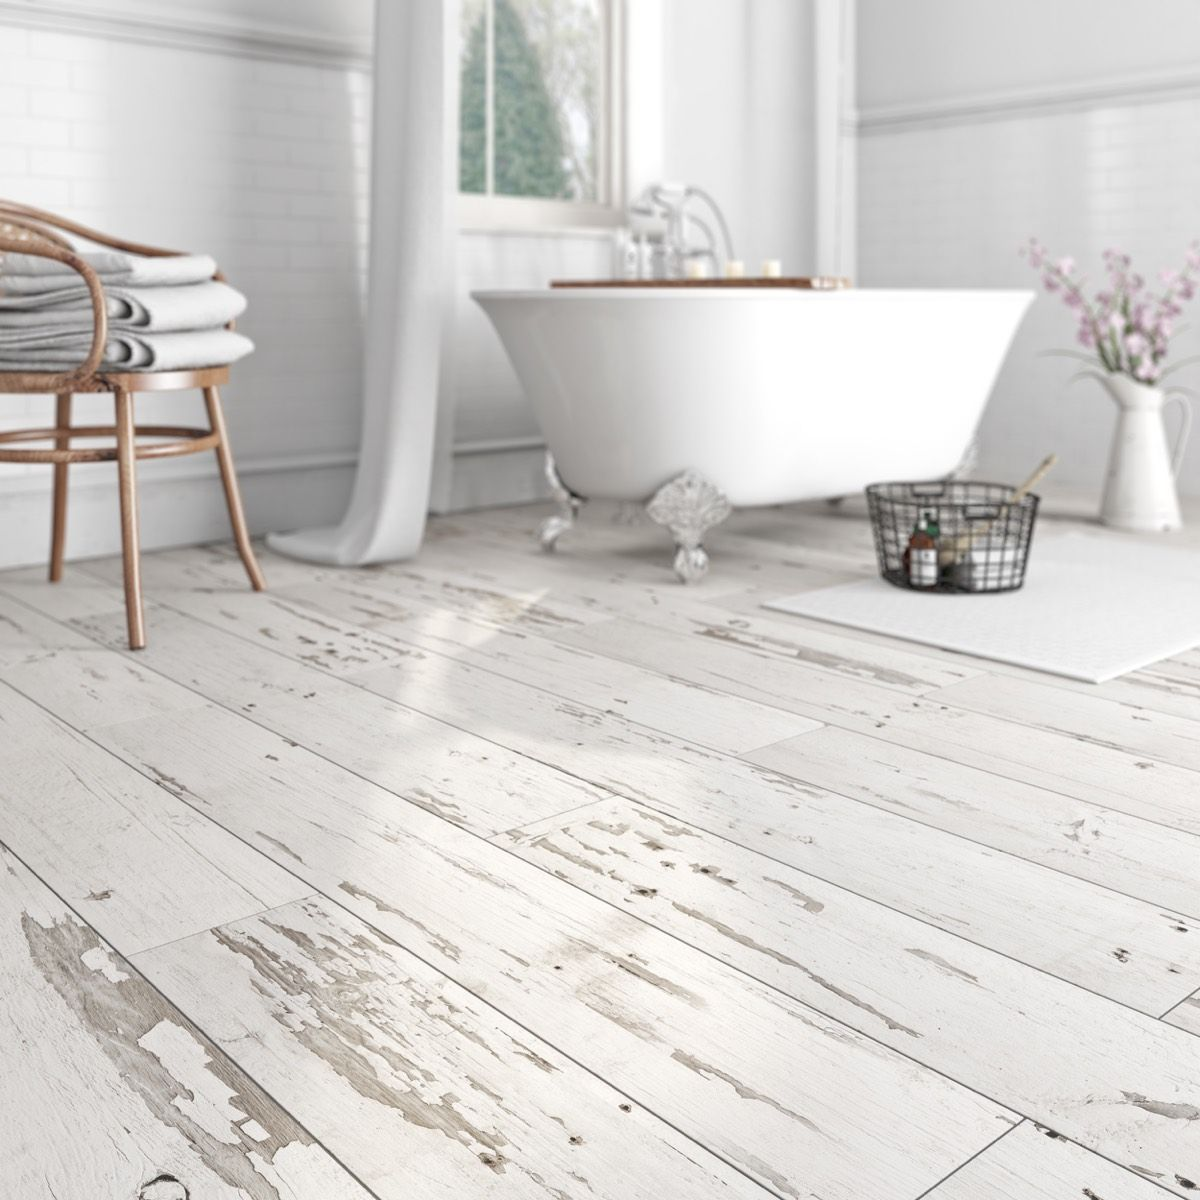 Krono xonic pennsylvania waterproof vinyl flooring for Wood effect vinyl flooring bathroom